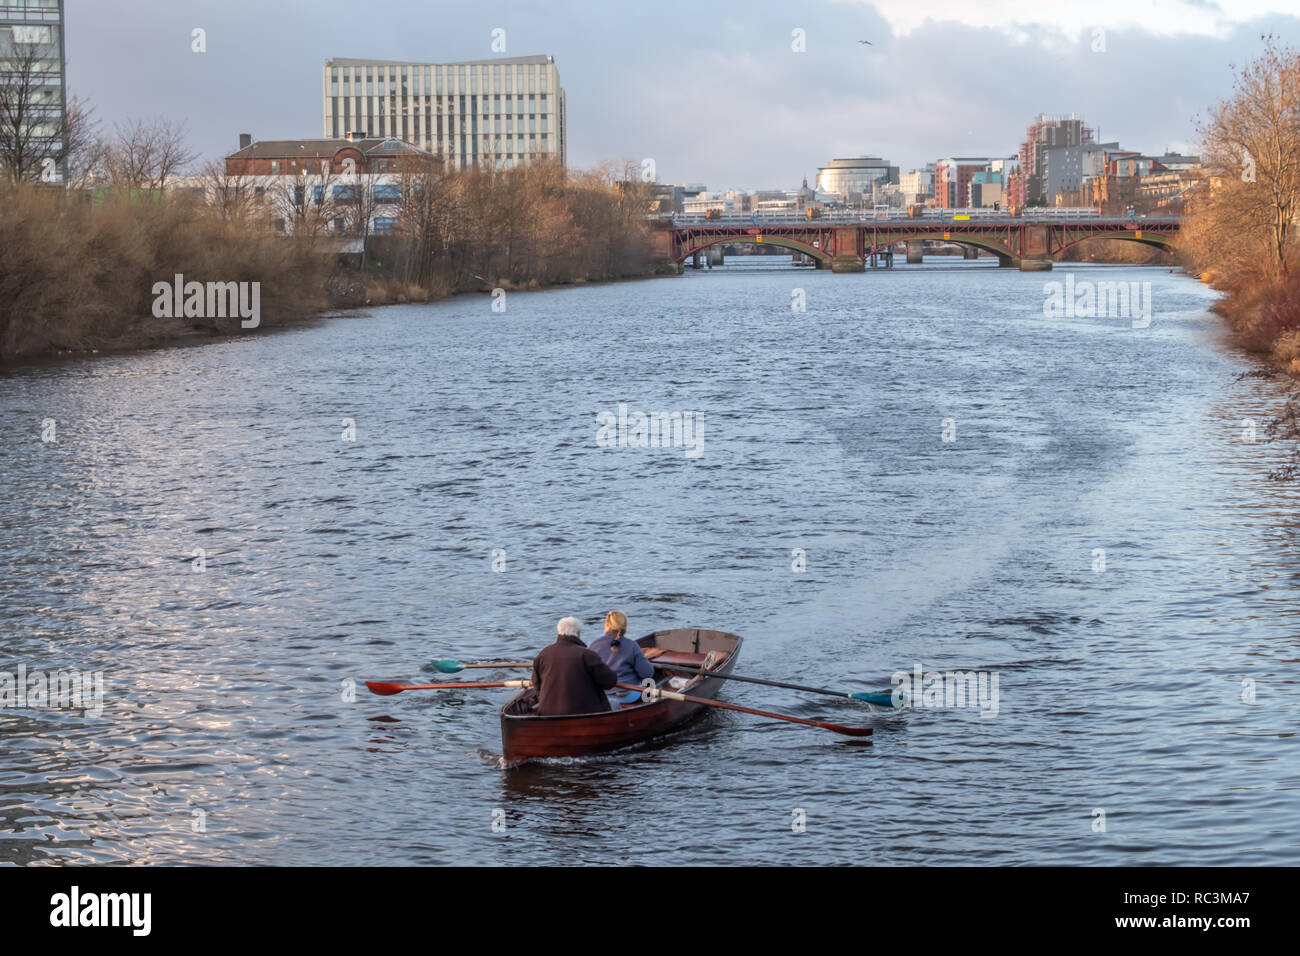 Glasgow, Scotland, UK. 13th January, 2019. UK Weather: George Parsonage of The Glasgow Humane Society and a companion rowing on the River Clyde on a day of sunshine and showers. Credit: Skully/Alamy Live News - Stock Image